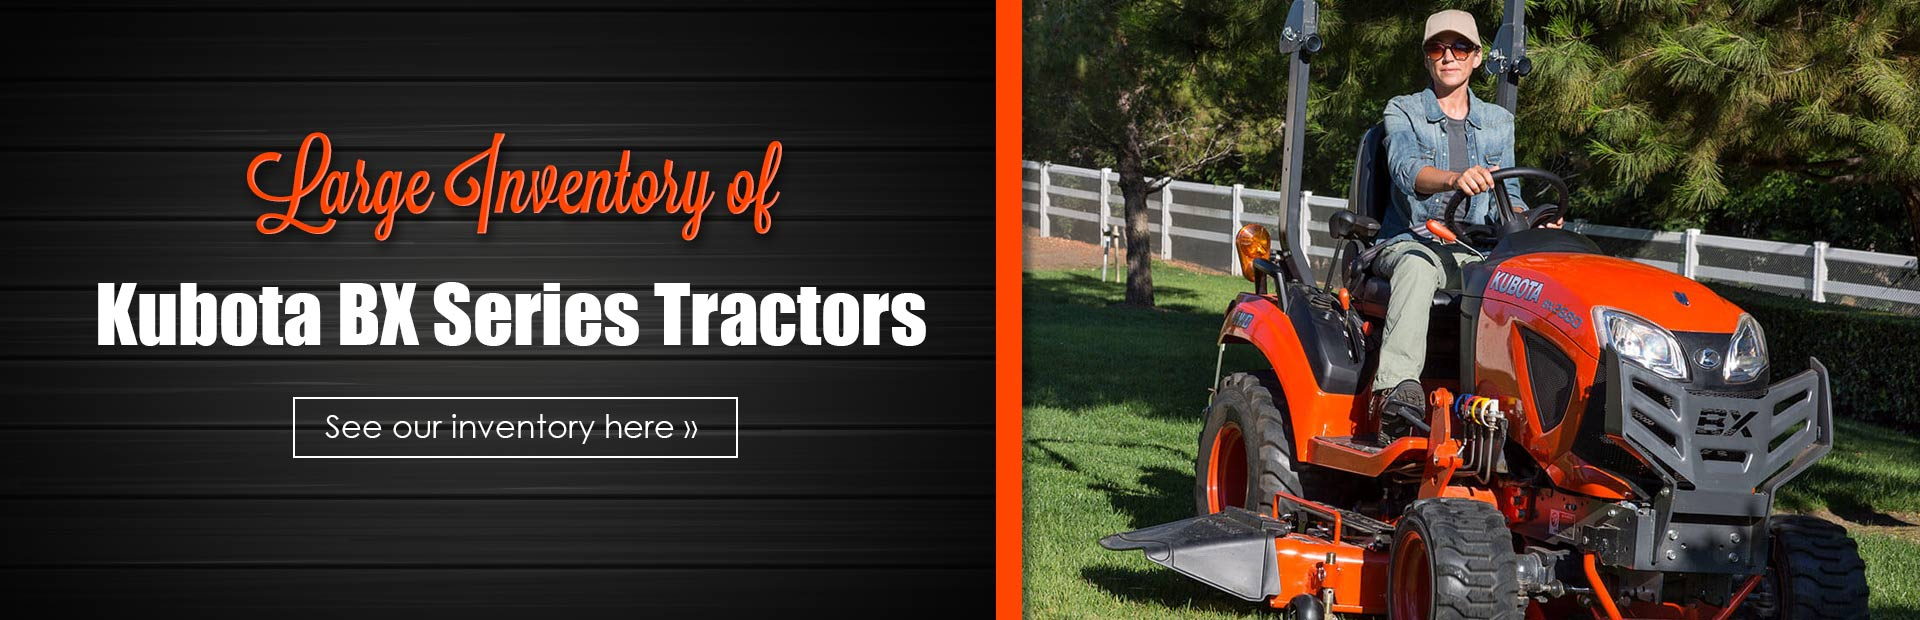 Large Inventory of Kubota BX Series Tractors: Click here to see our inventory.